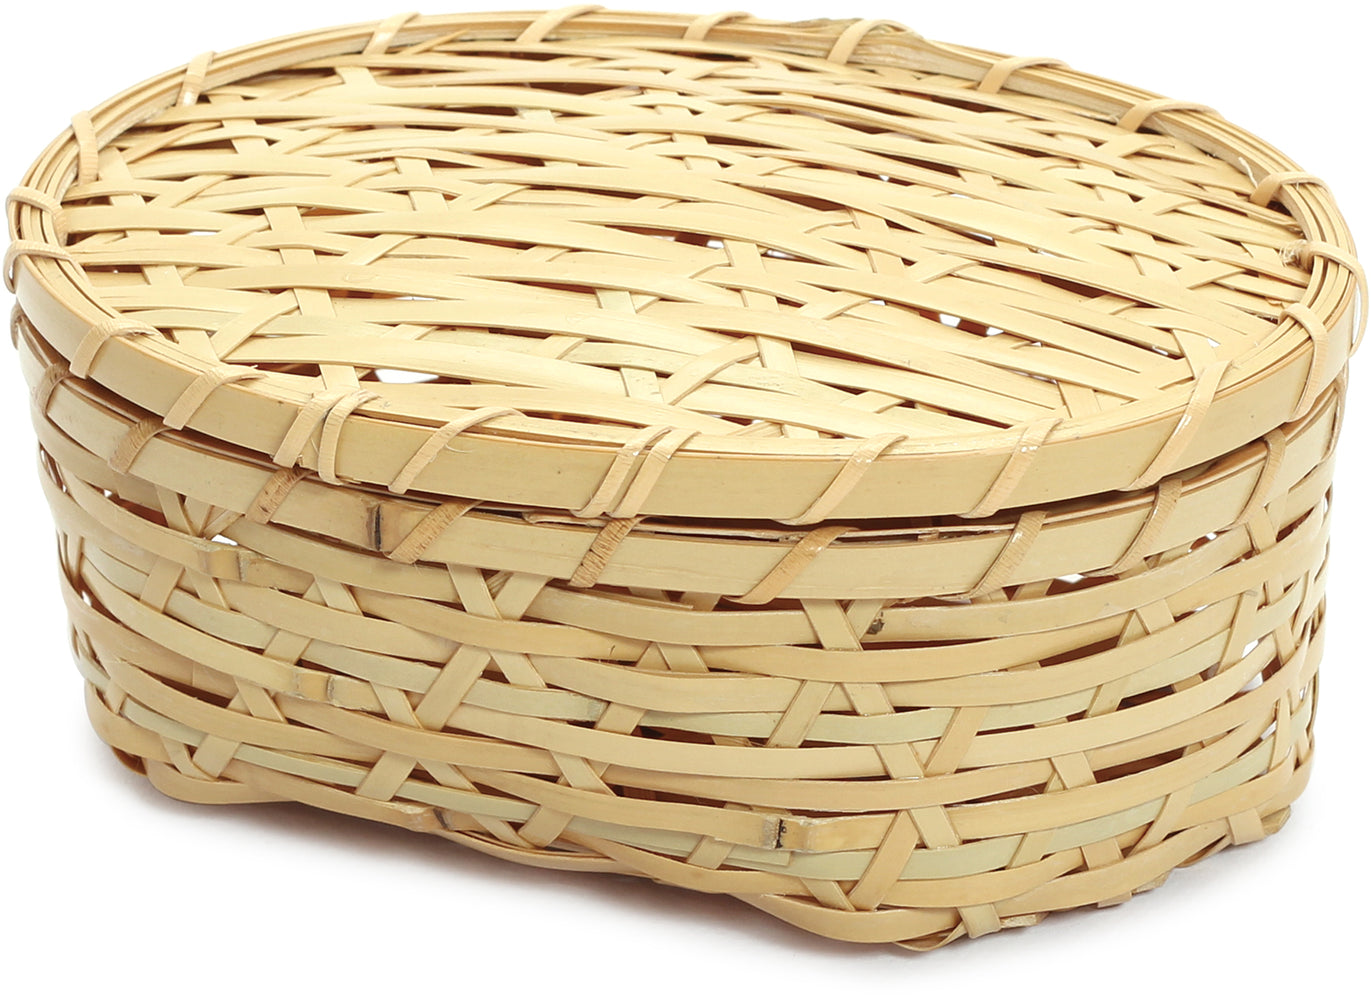 Weaved Bamboo Bento Box Oval | Small by Yamaki - Bento&co Japanese Bento Lunch Boxes and Kitchenware Specialists